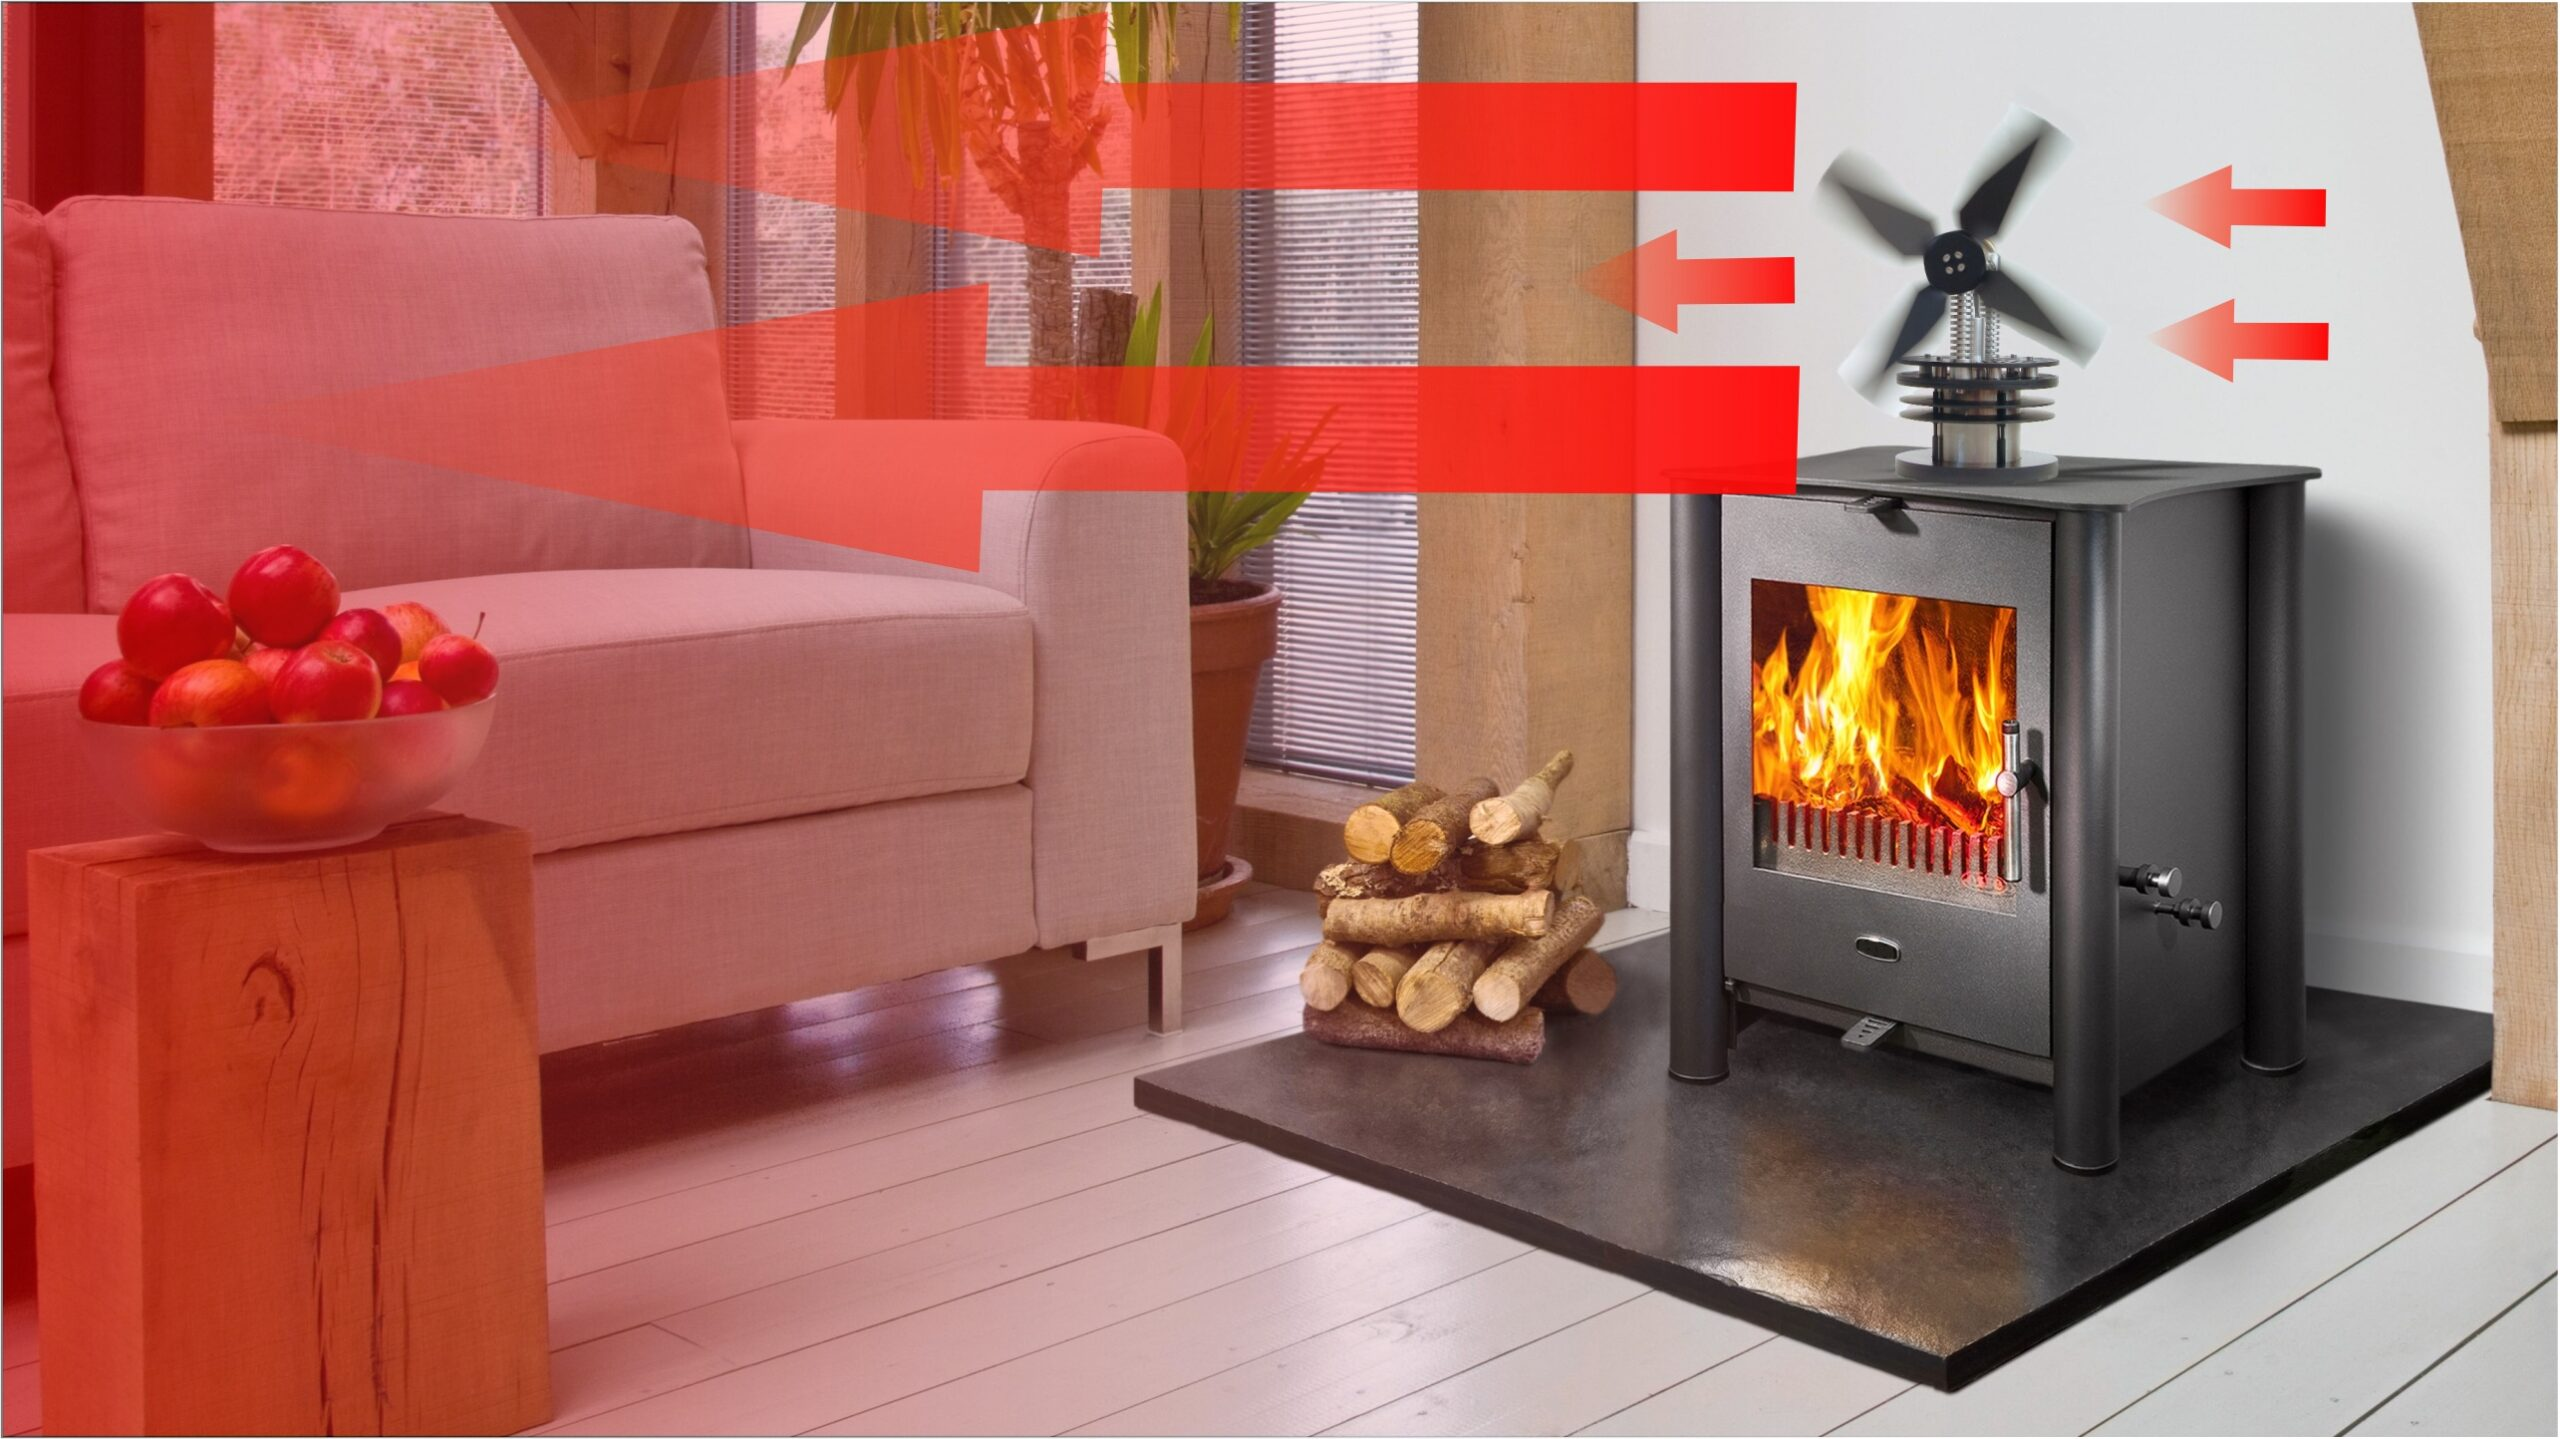 When you use a stove fan, the heat is circulated throughout the room - saving on heating fuel and making it more comfortable.